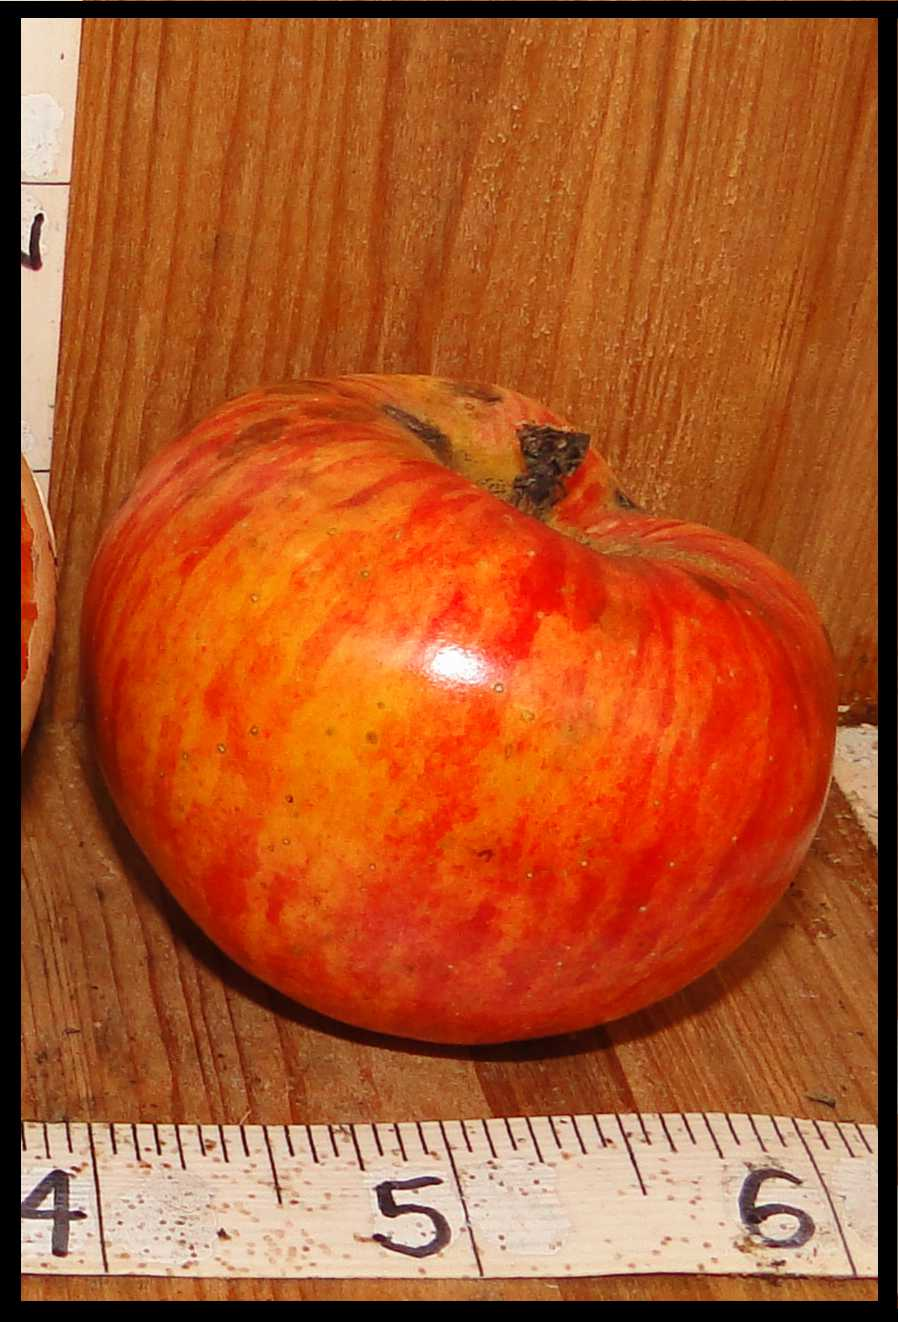 shiny red and orange striped apple